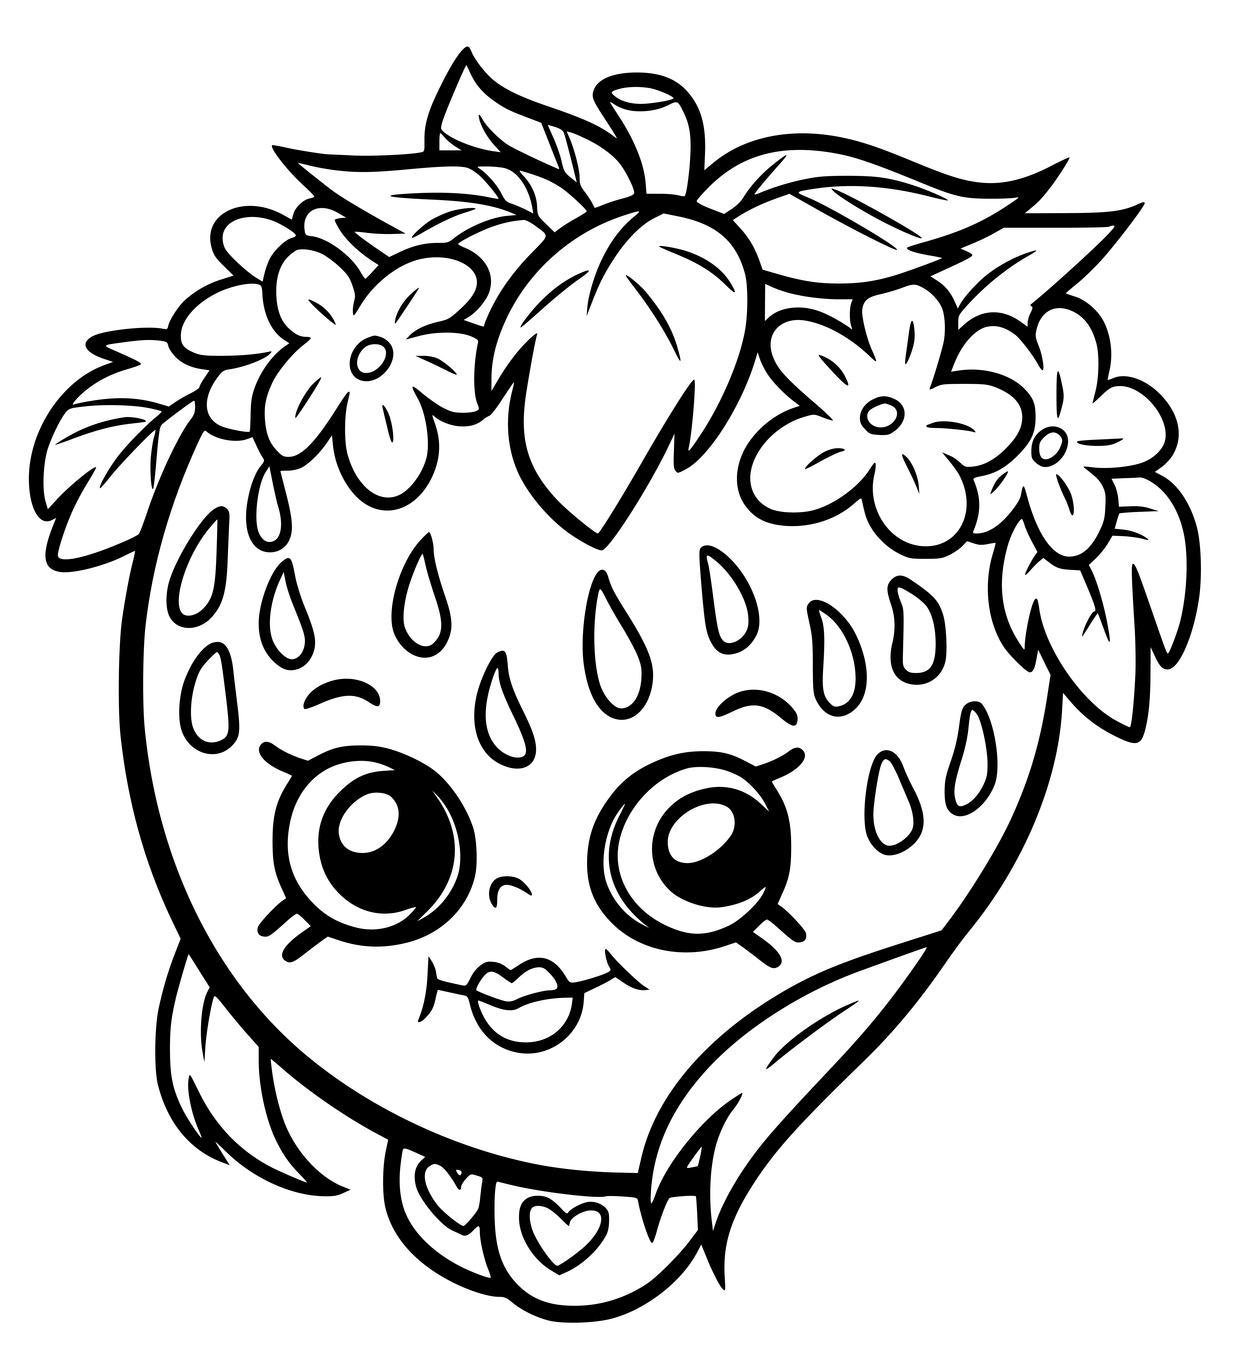 1240x1359 Shopkins Coloring Pages 16 Coloring Pages For Kids